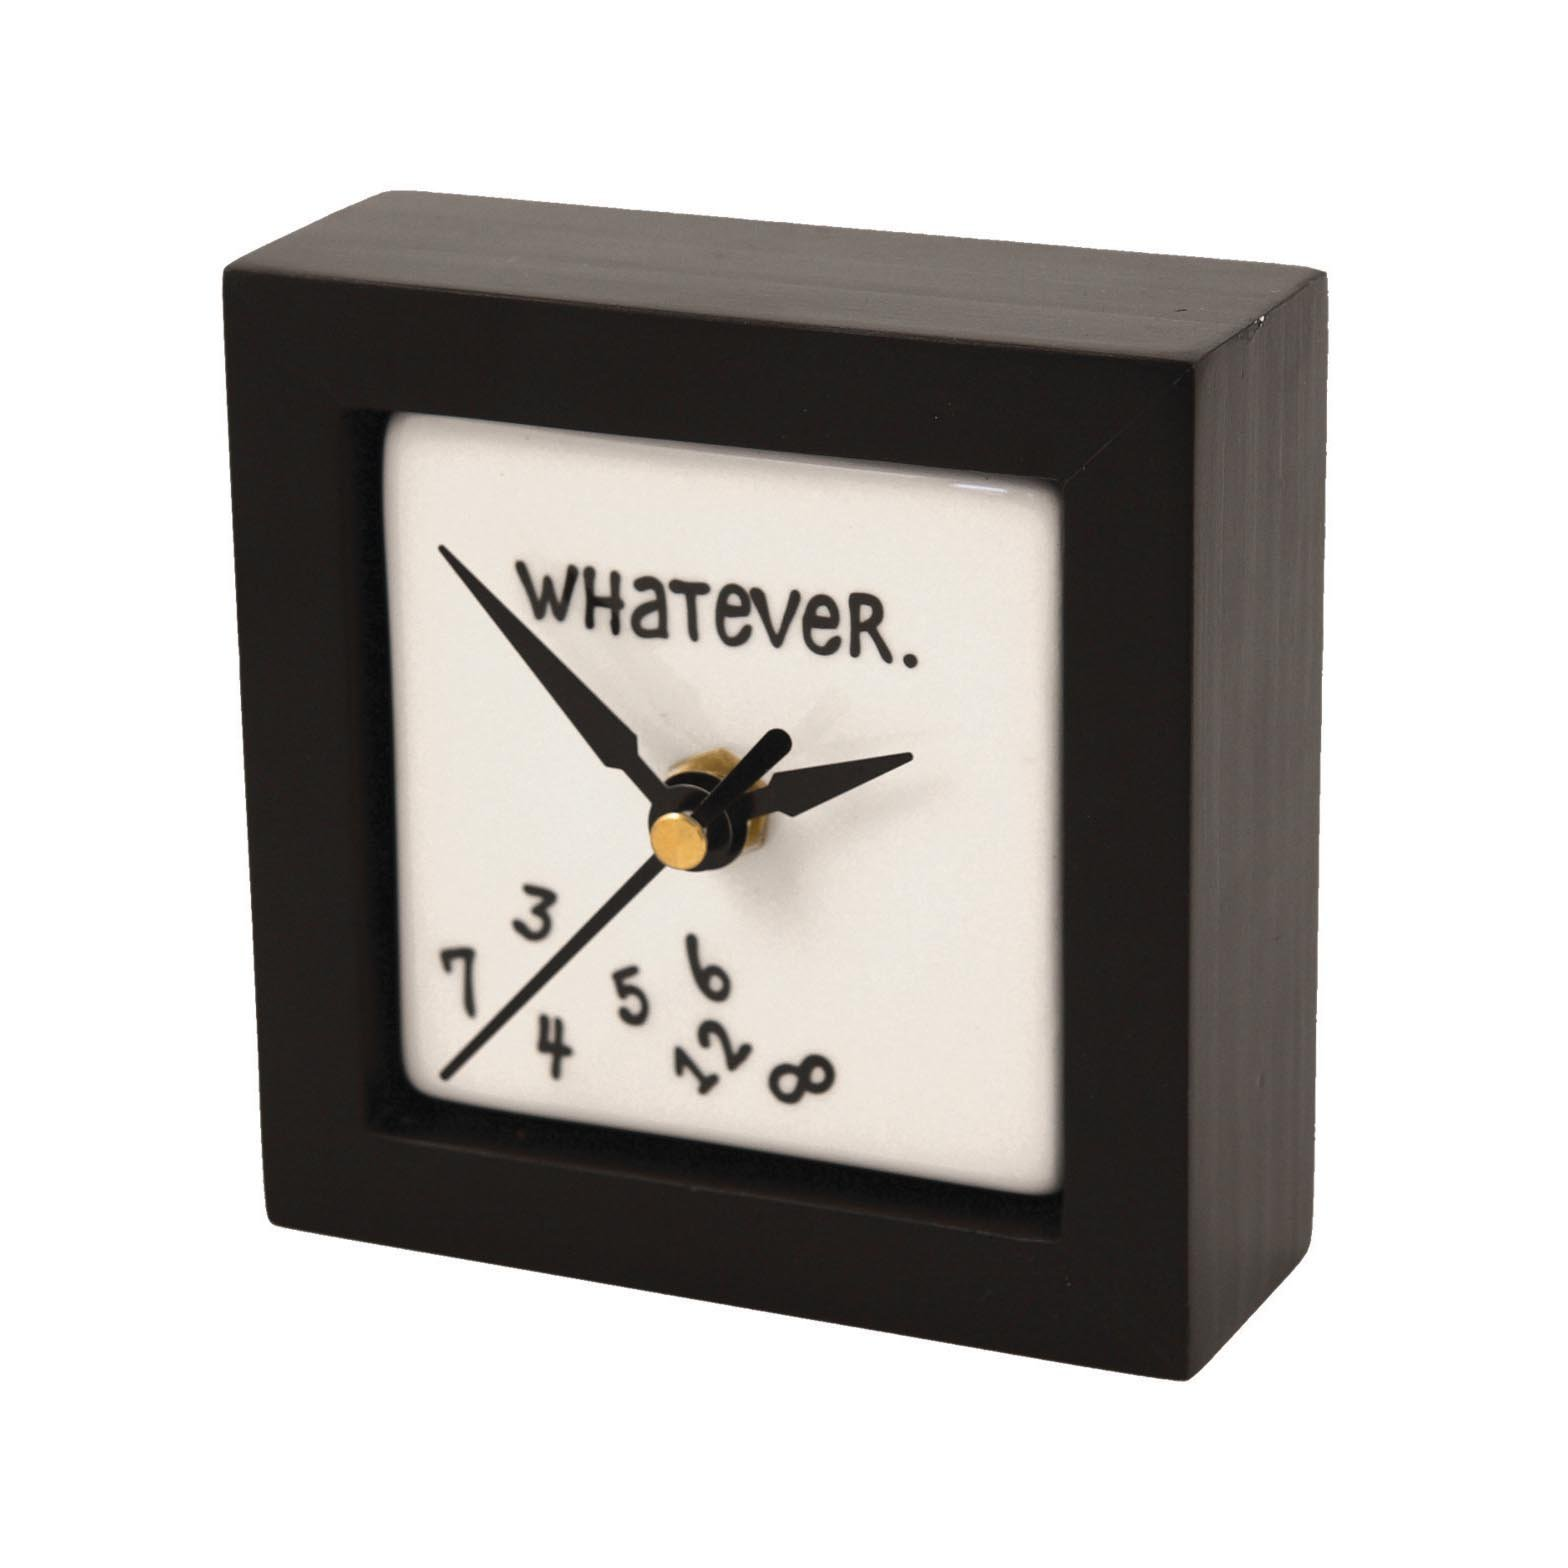 """Enesco Gift Our Name is Mud """"Whatever"""" Battery-Operated Square Desk or Wall Clock, 4 Inches by Enesco Gift"""